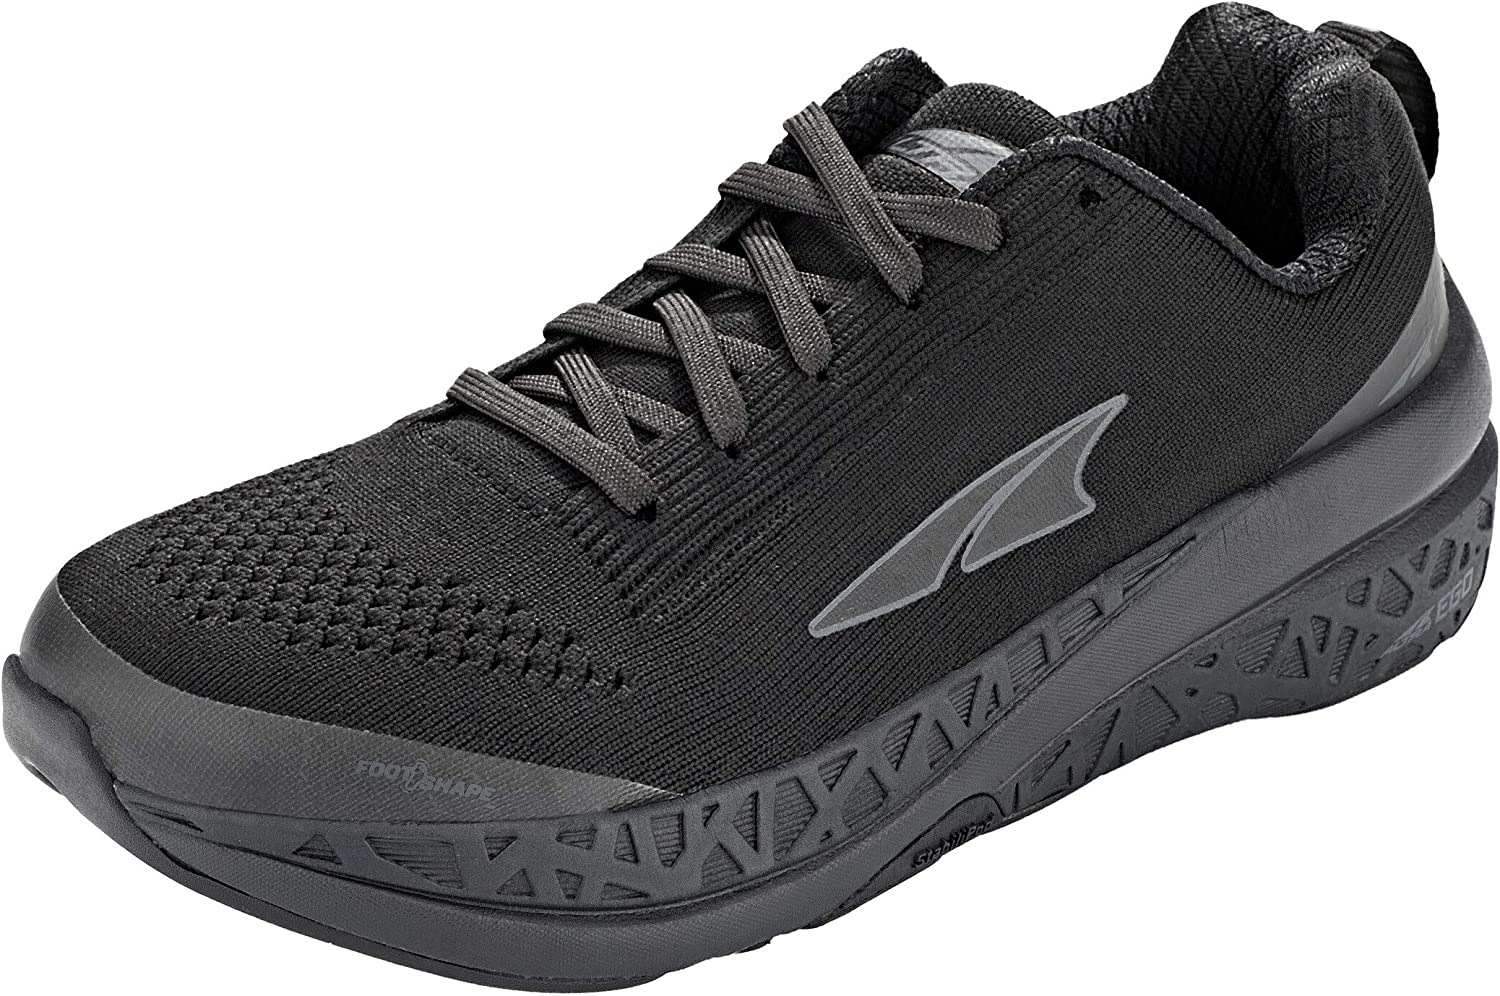 ALTRA Womens Paradigm 4.5 Road Running Shoe